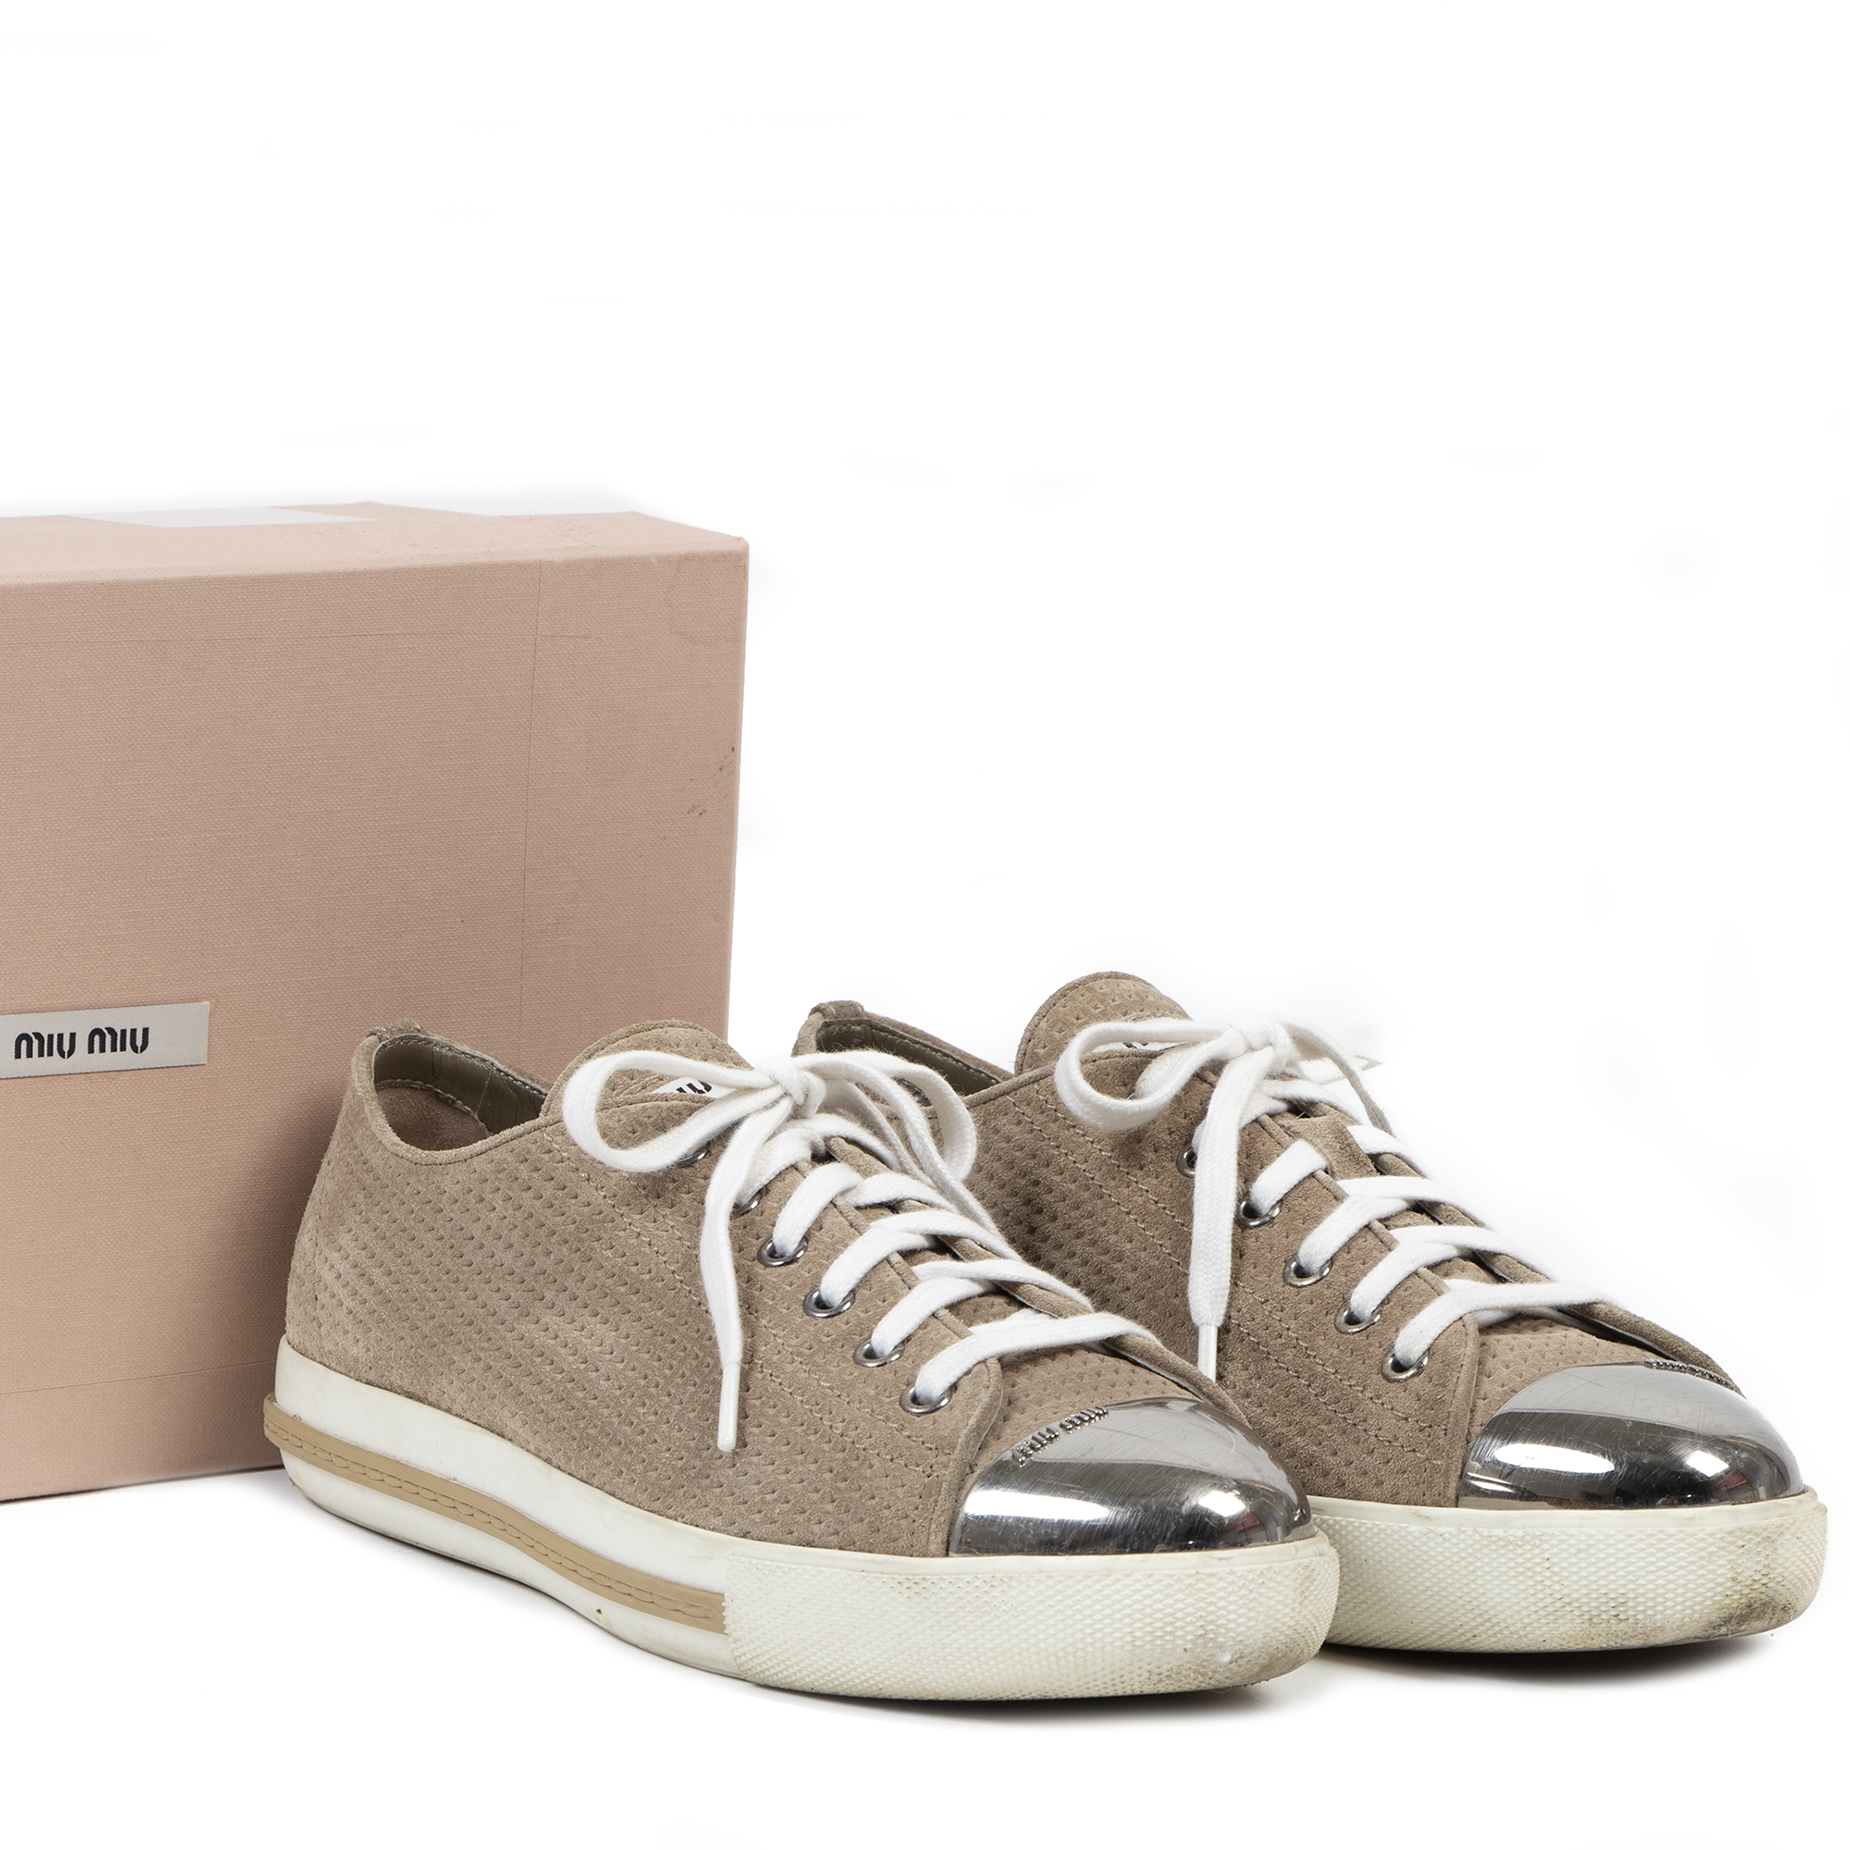 Authentique seconde-main vintage Miu Miu Brown Calzatore Donna Deserto Sneakers - Size 40,5 achète en ligne webshop LabelLOV